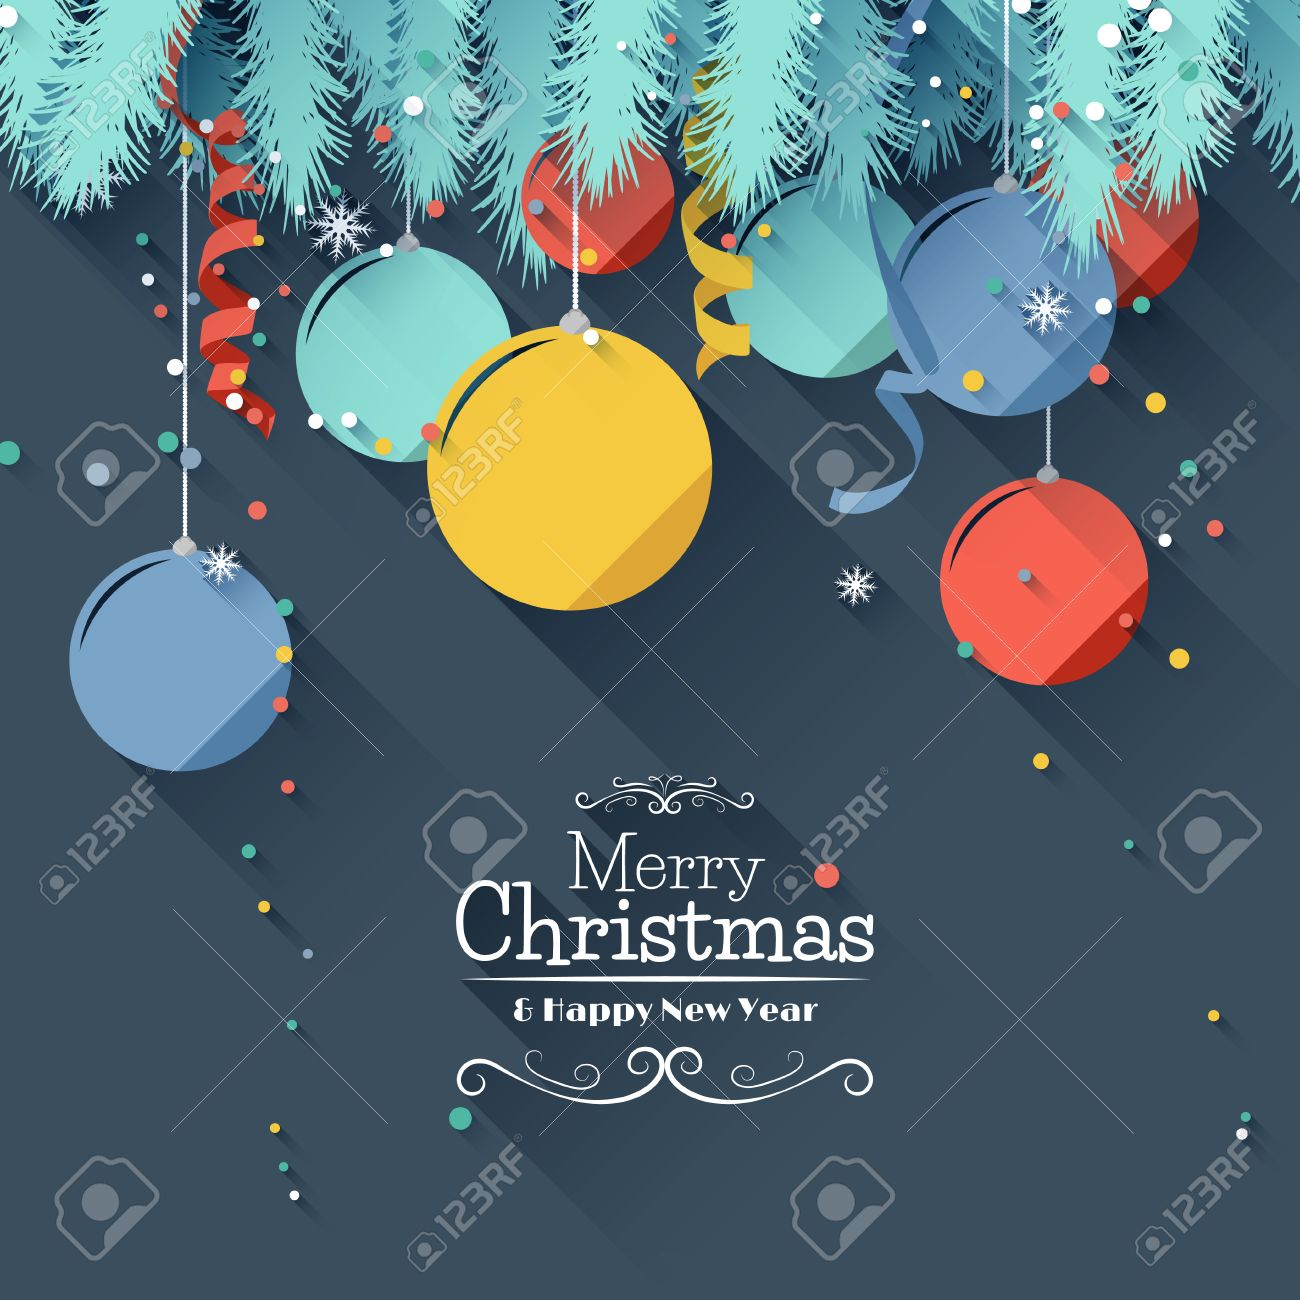 Modern Christmas Greeting Card Flat Design Style Royalty Free